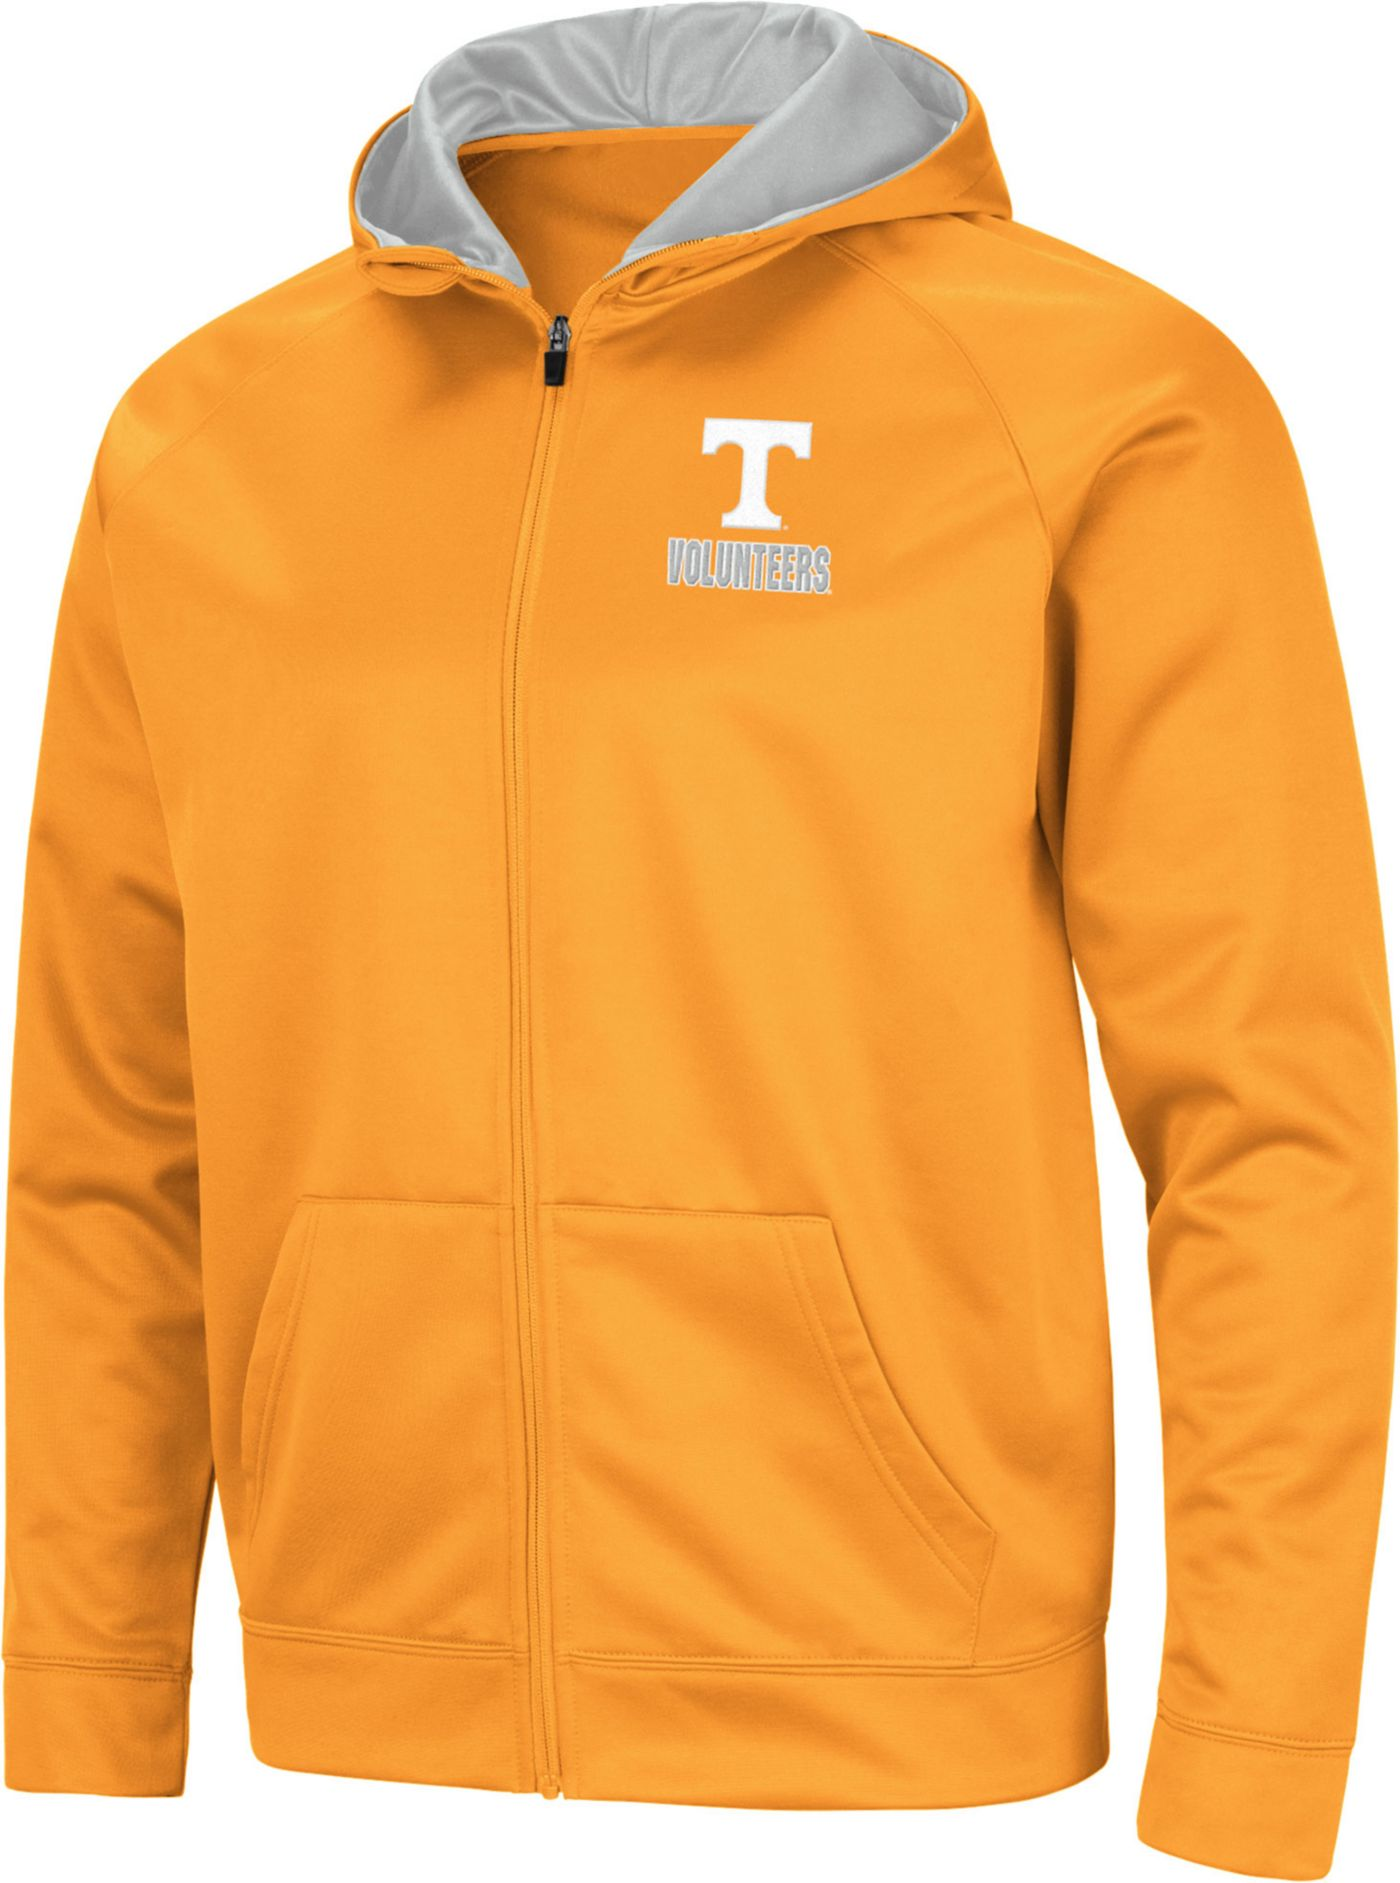 Colosseum Men's Tennessee Volunteers Tennessee Orange Full-Zip Hoodie